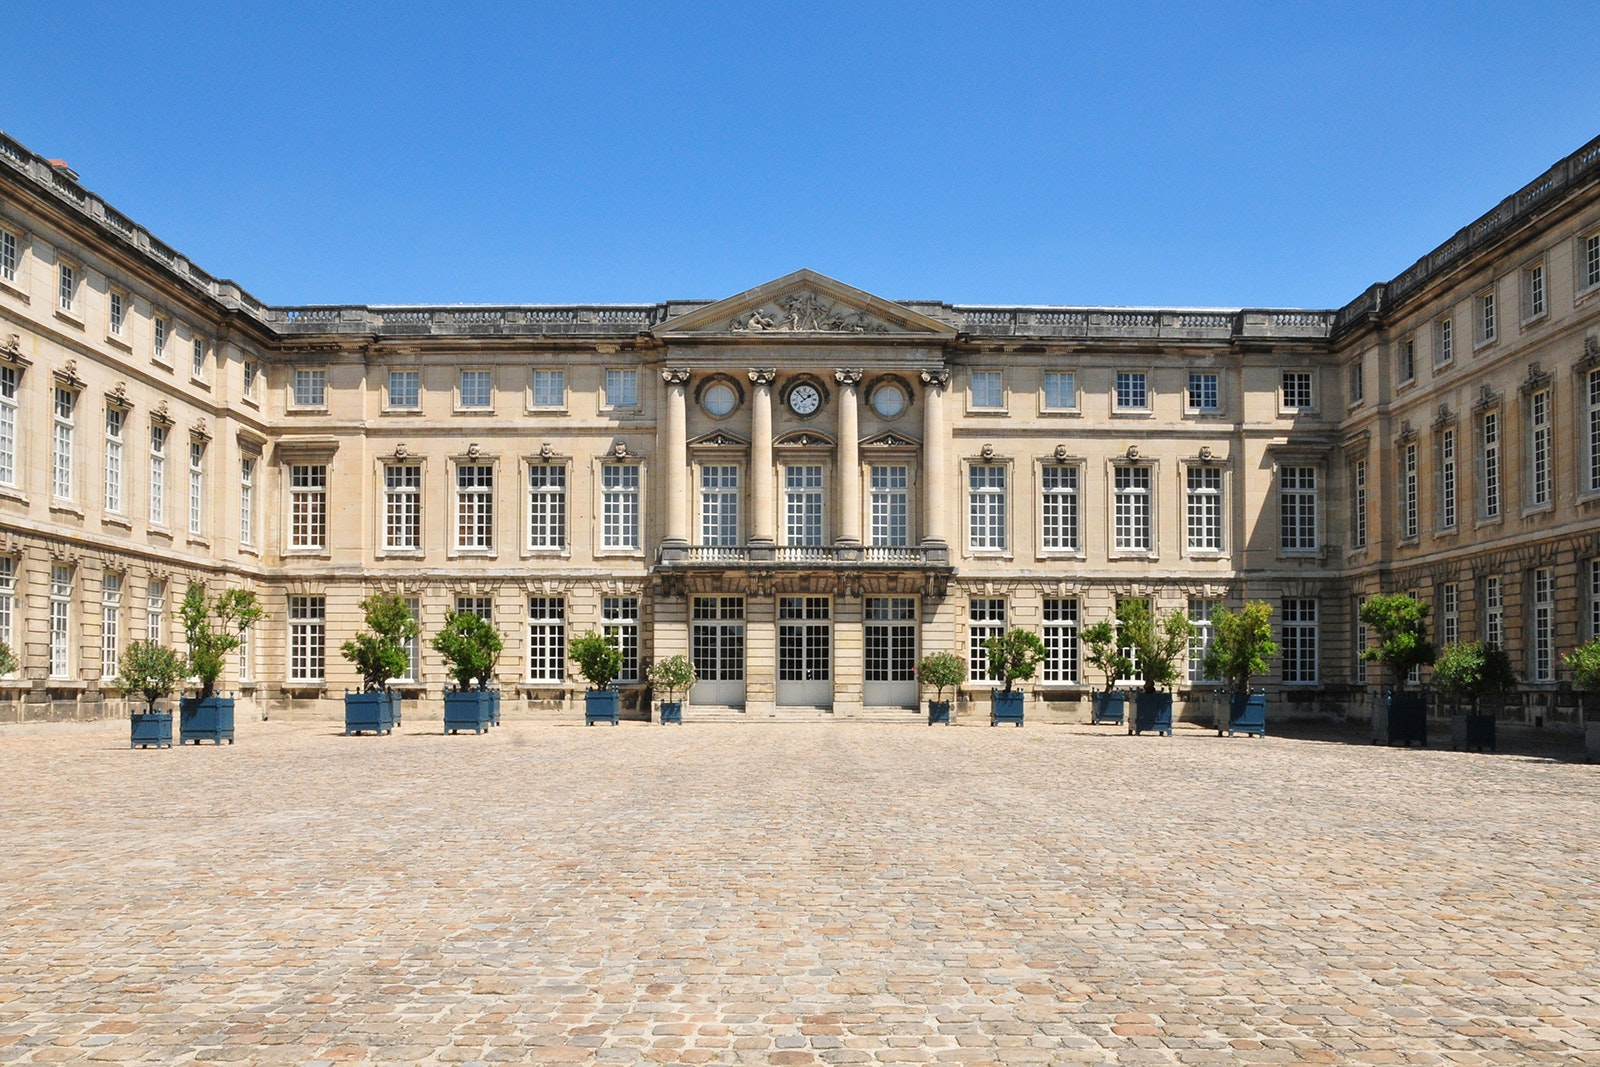 The Palais du Compiègne was built for Louis XV and later used as the autumn residence of Napoleon III.